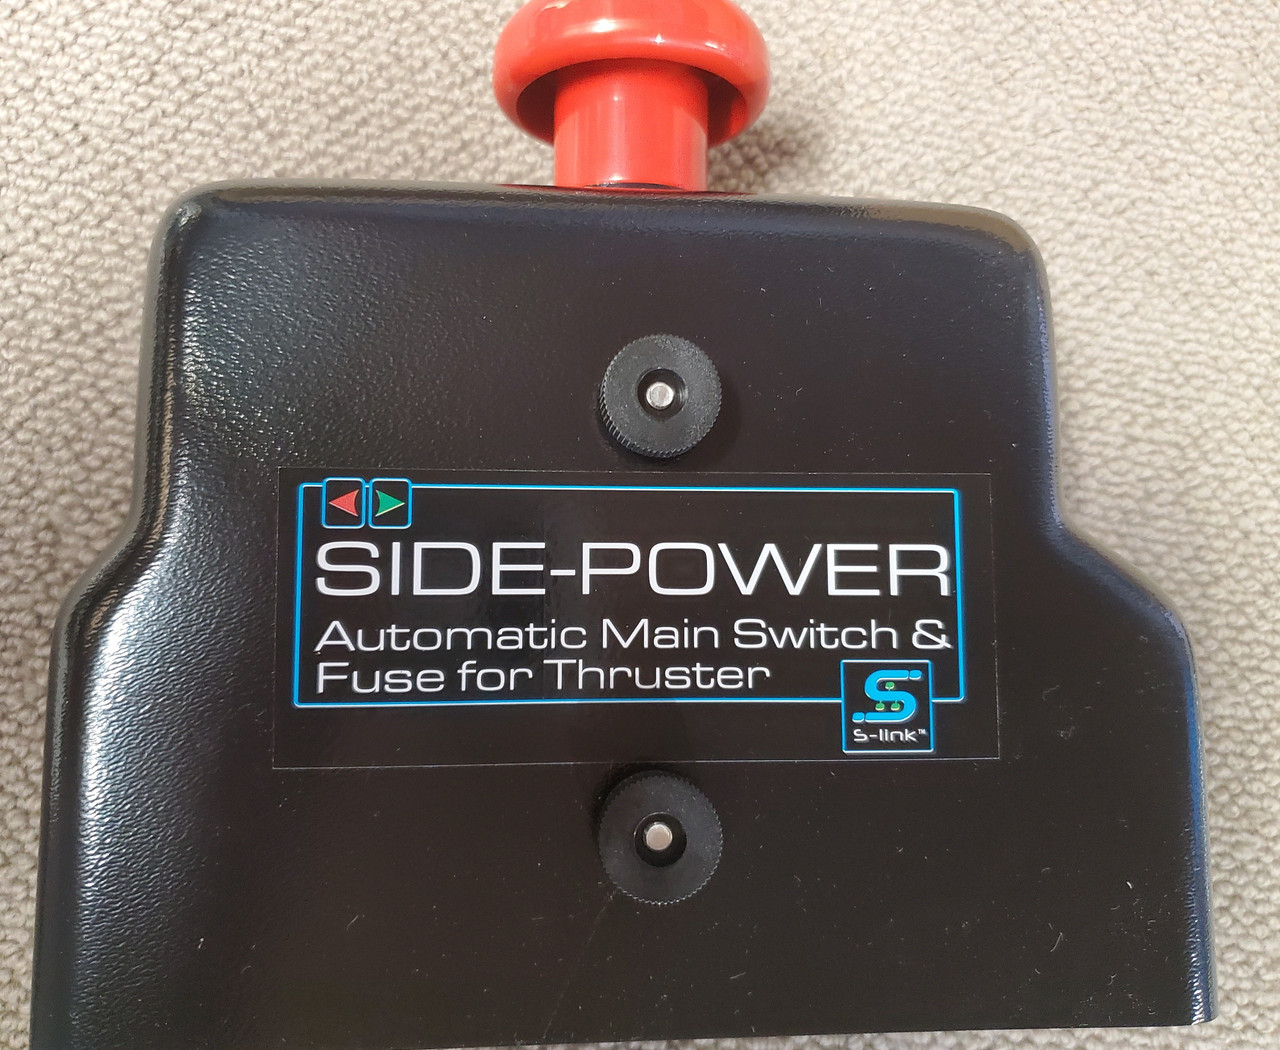 Automatic Main Switch (S-Link, 24V)